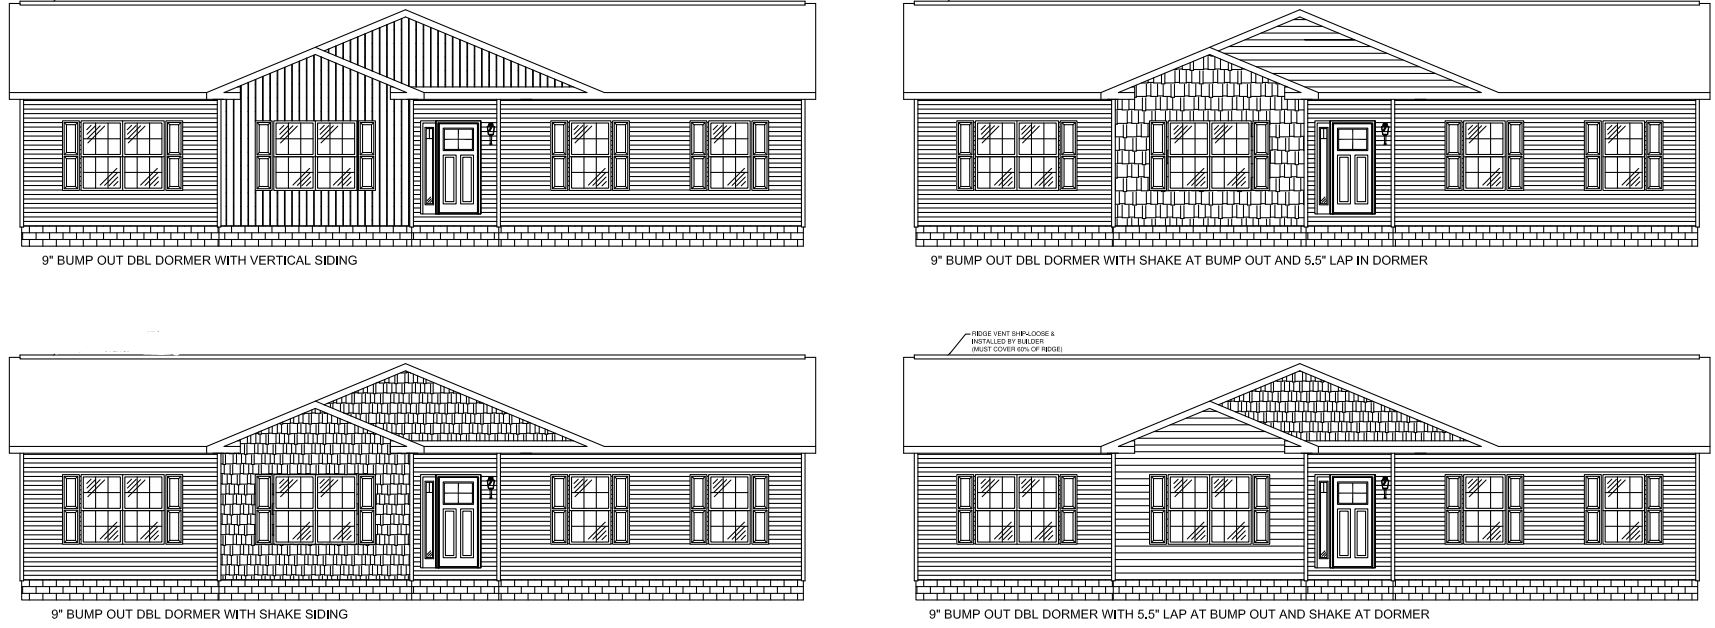 Optional Elevations On A 5/12